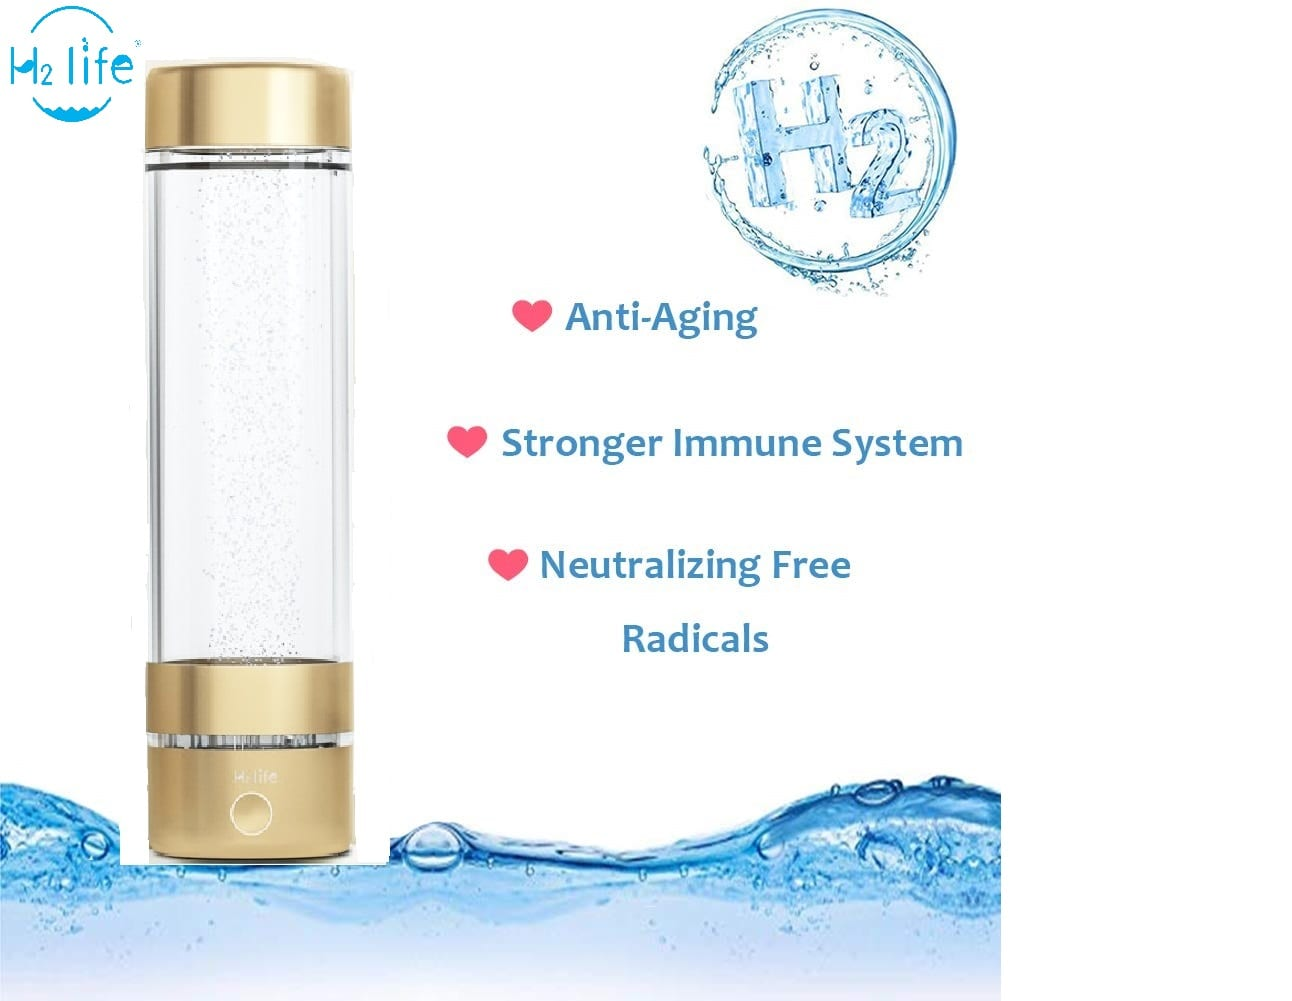 Hydrogen Water Boost Immunity System? Effects on human body